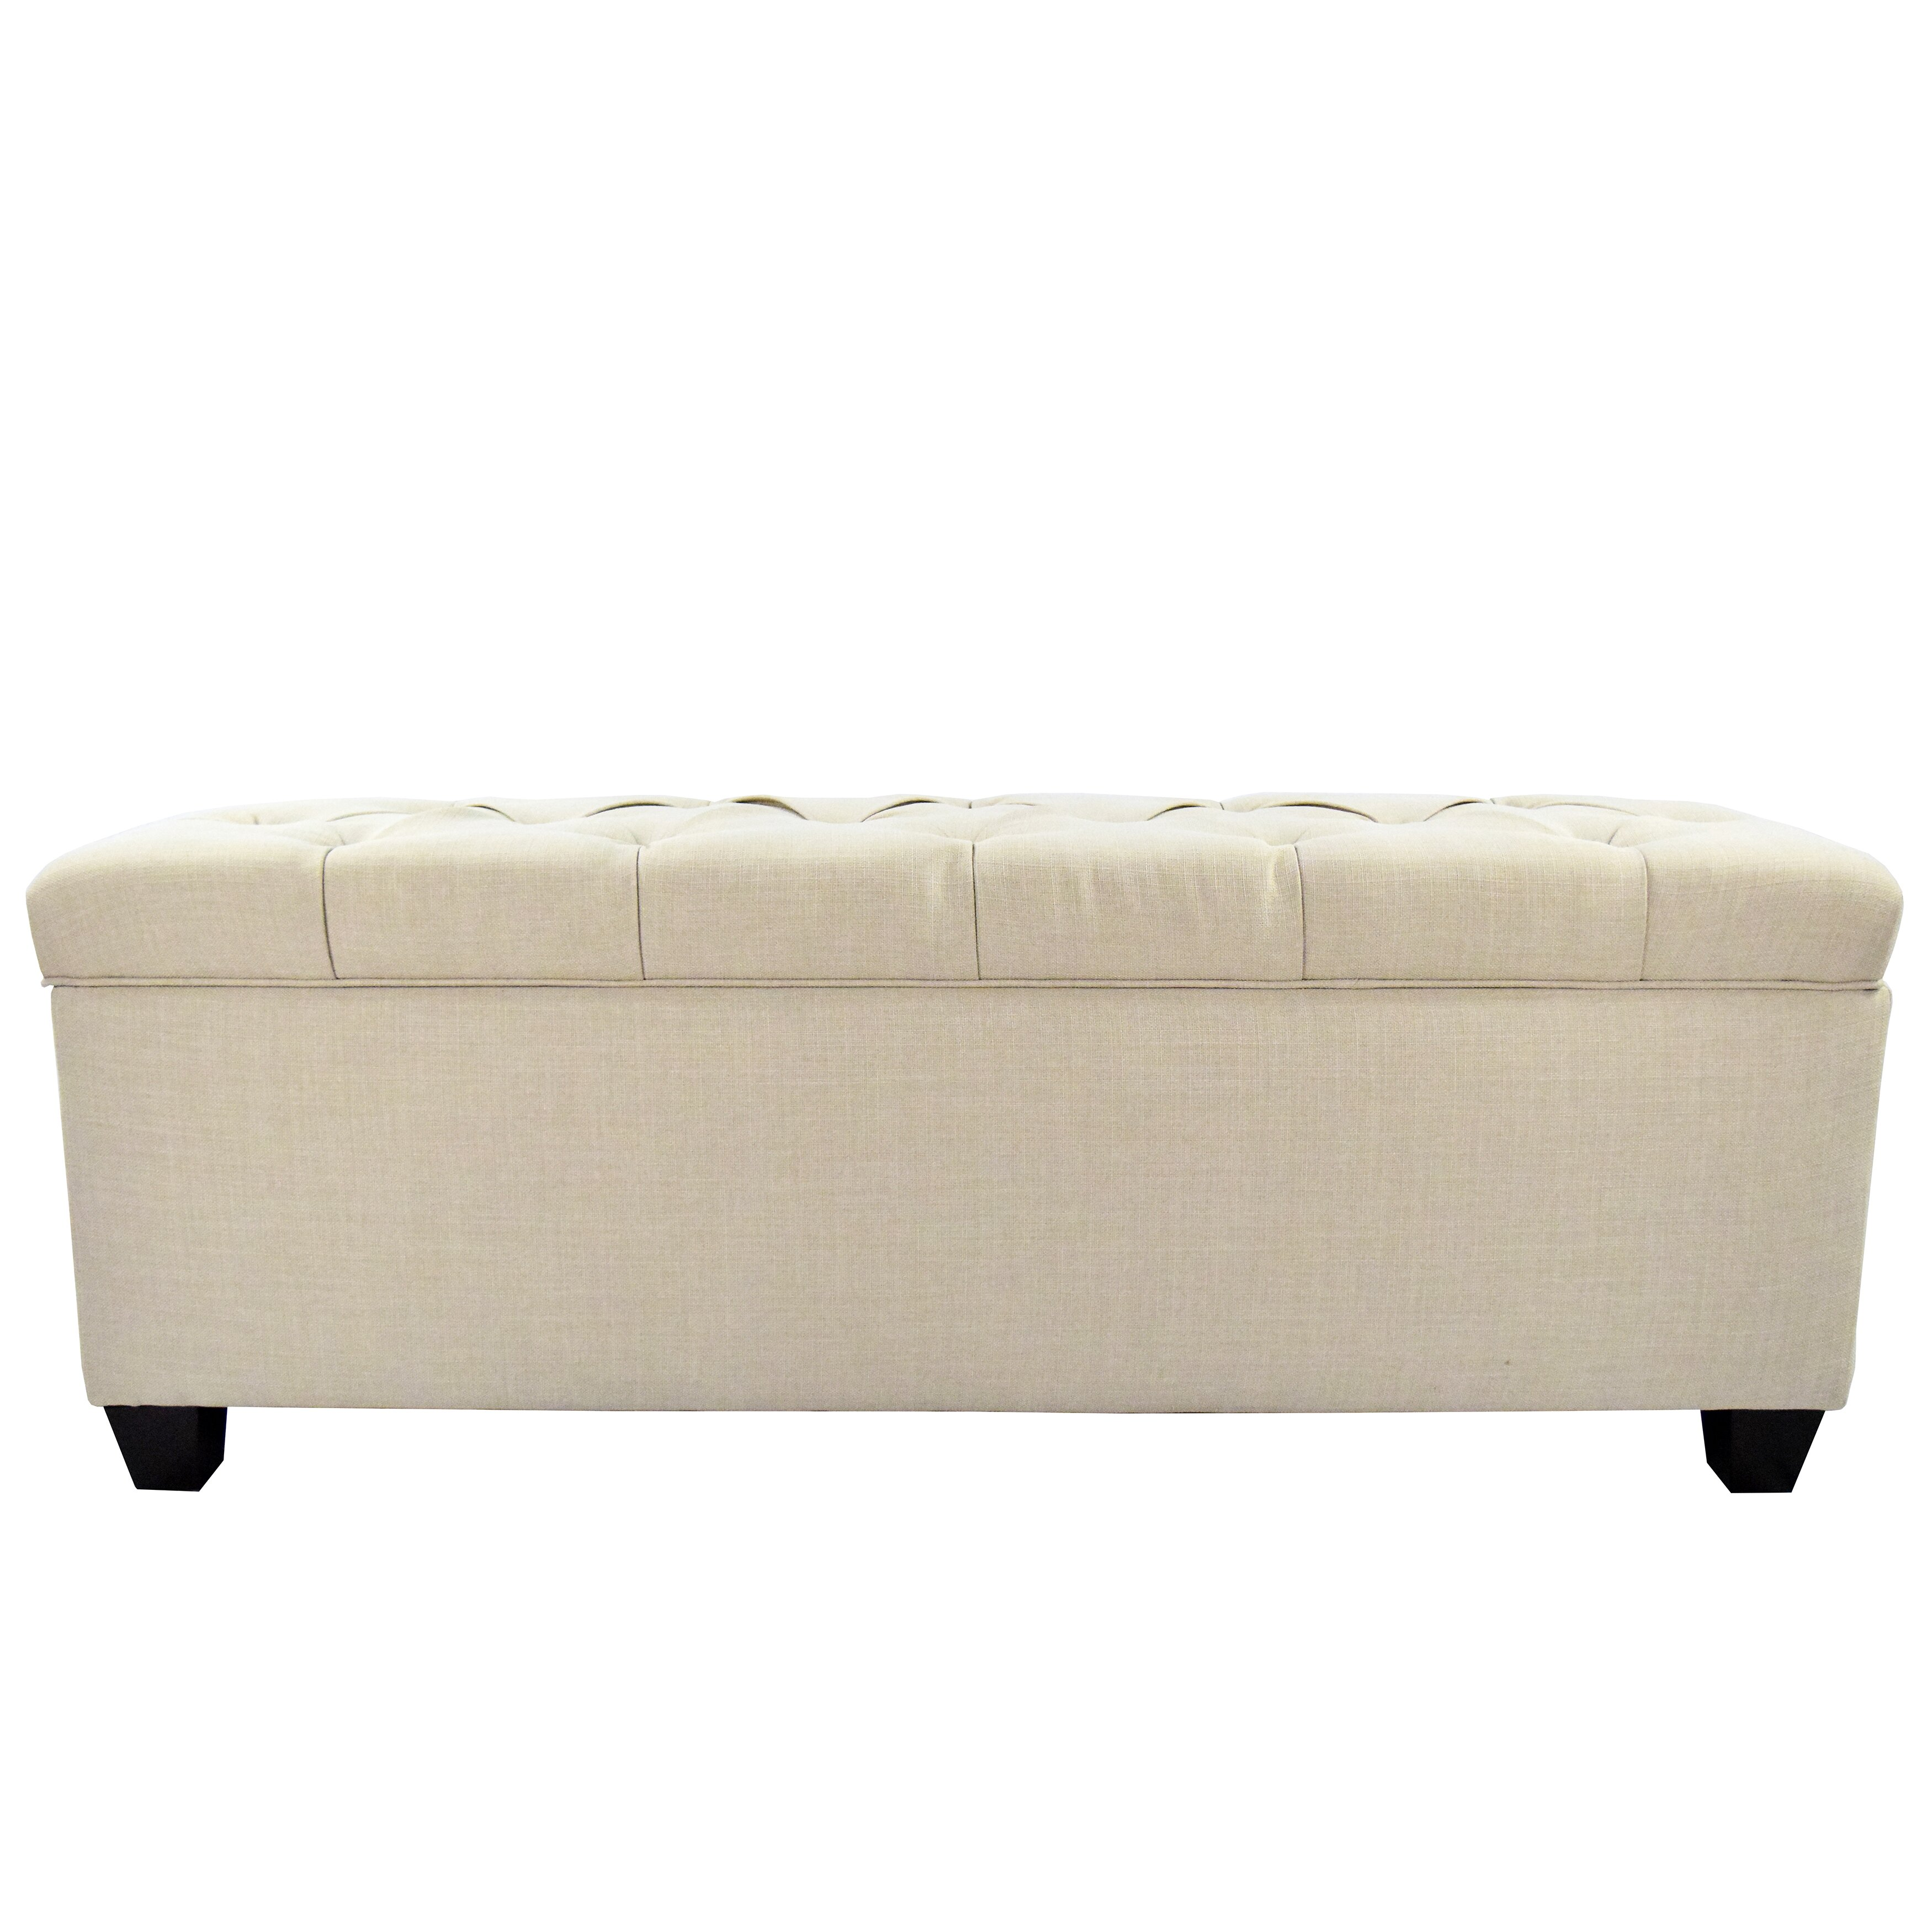 The Sole Secret Sole Secret Upholstered Storage Bench Reviews